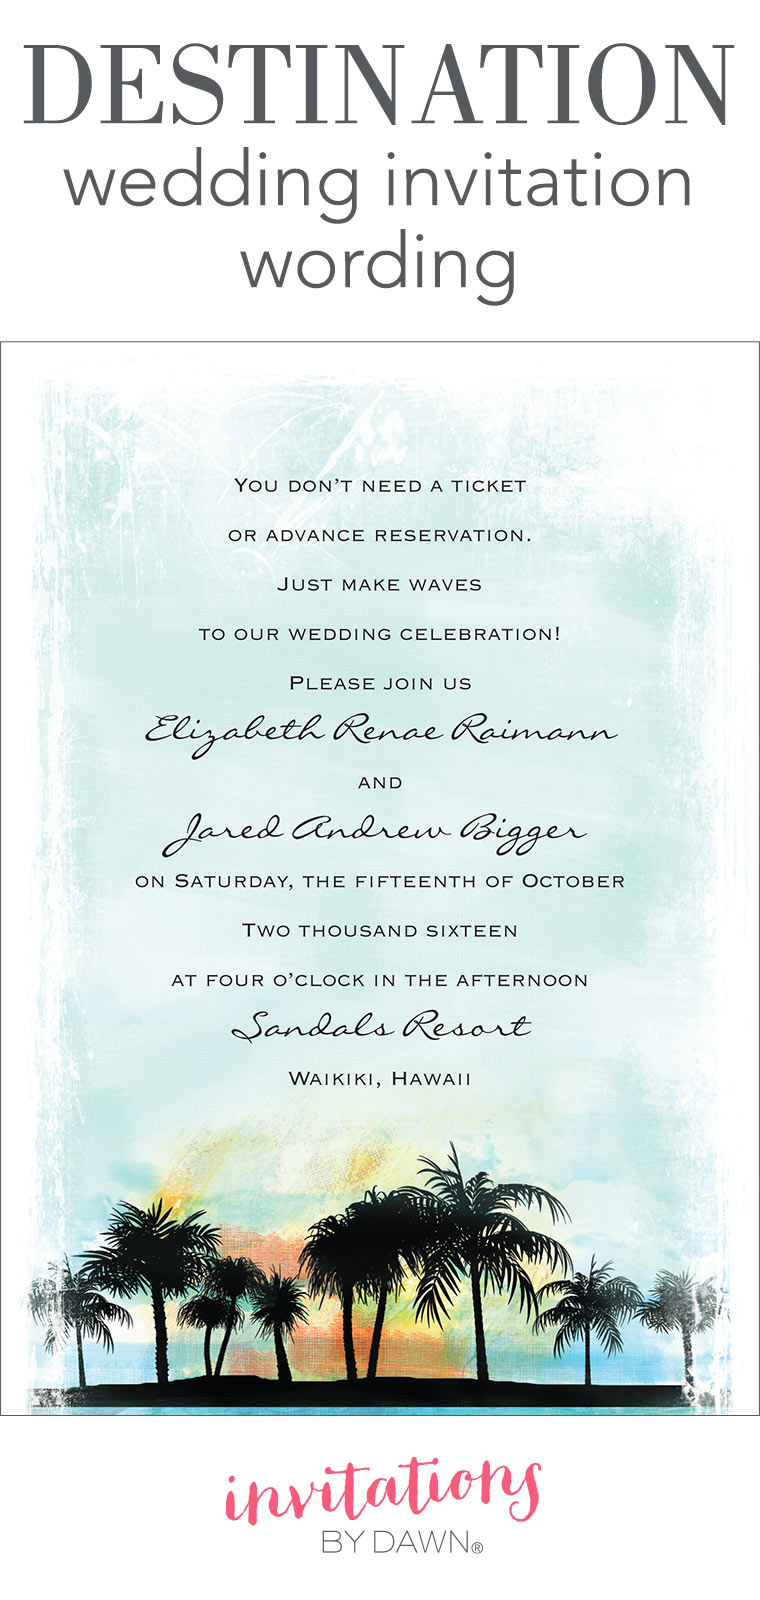 destination wedding invitation wording invitations by dawn With wedding destination invitation samples wordings